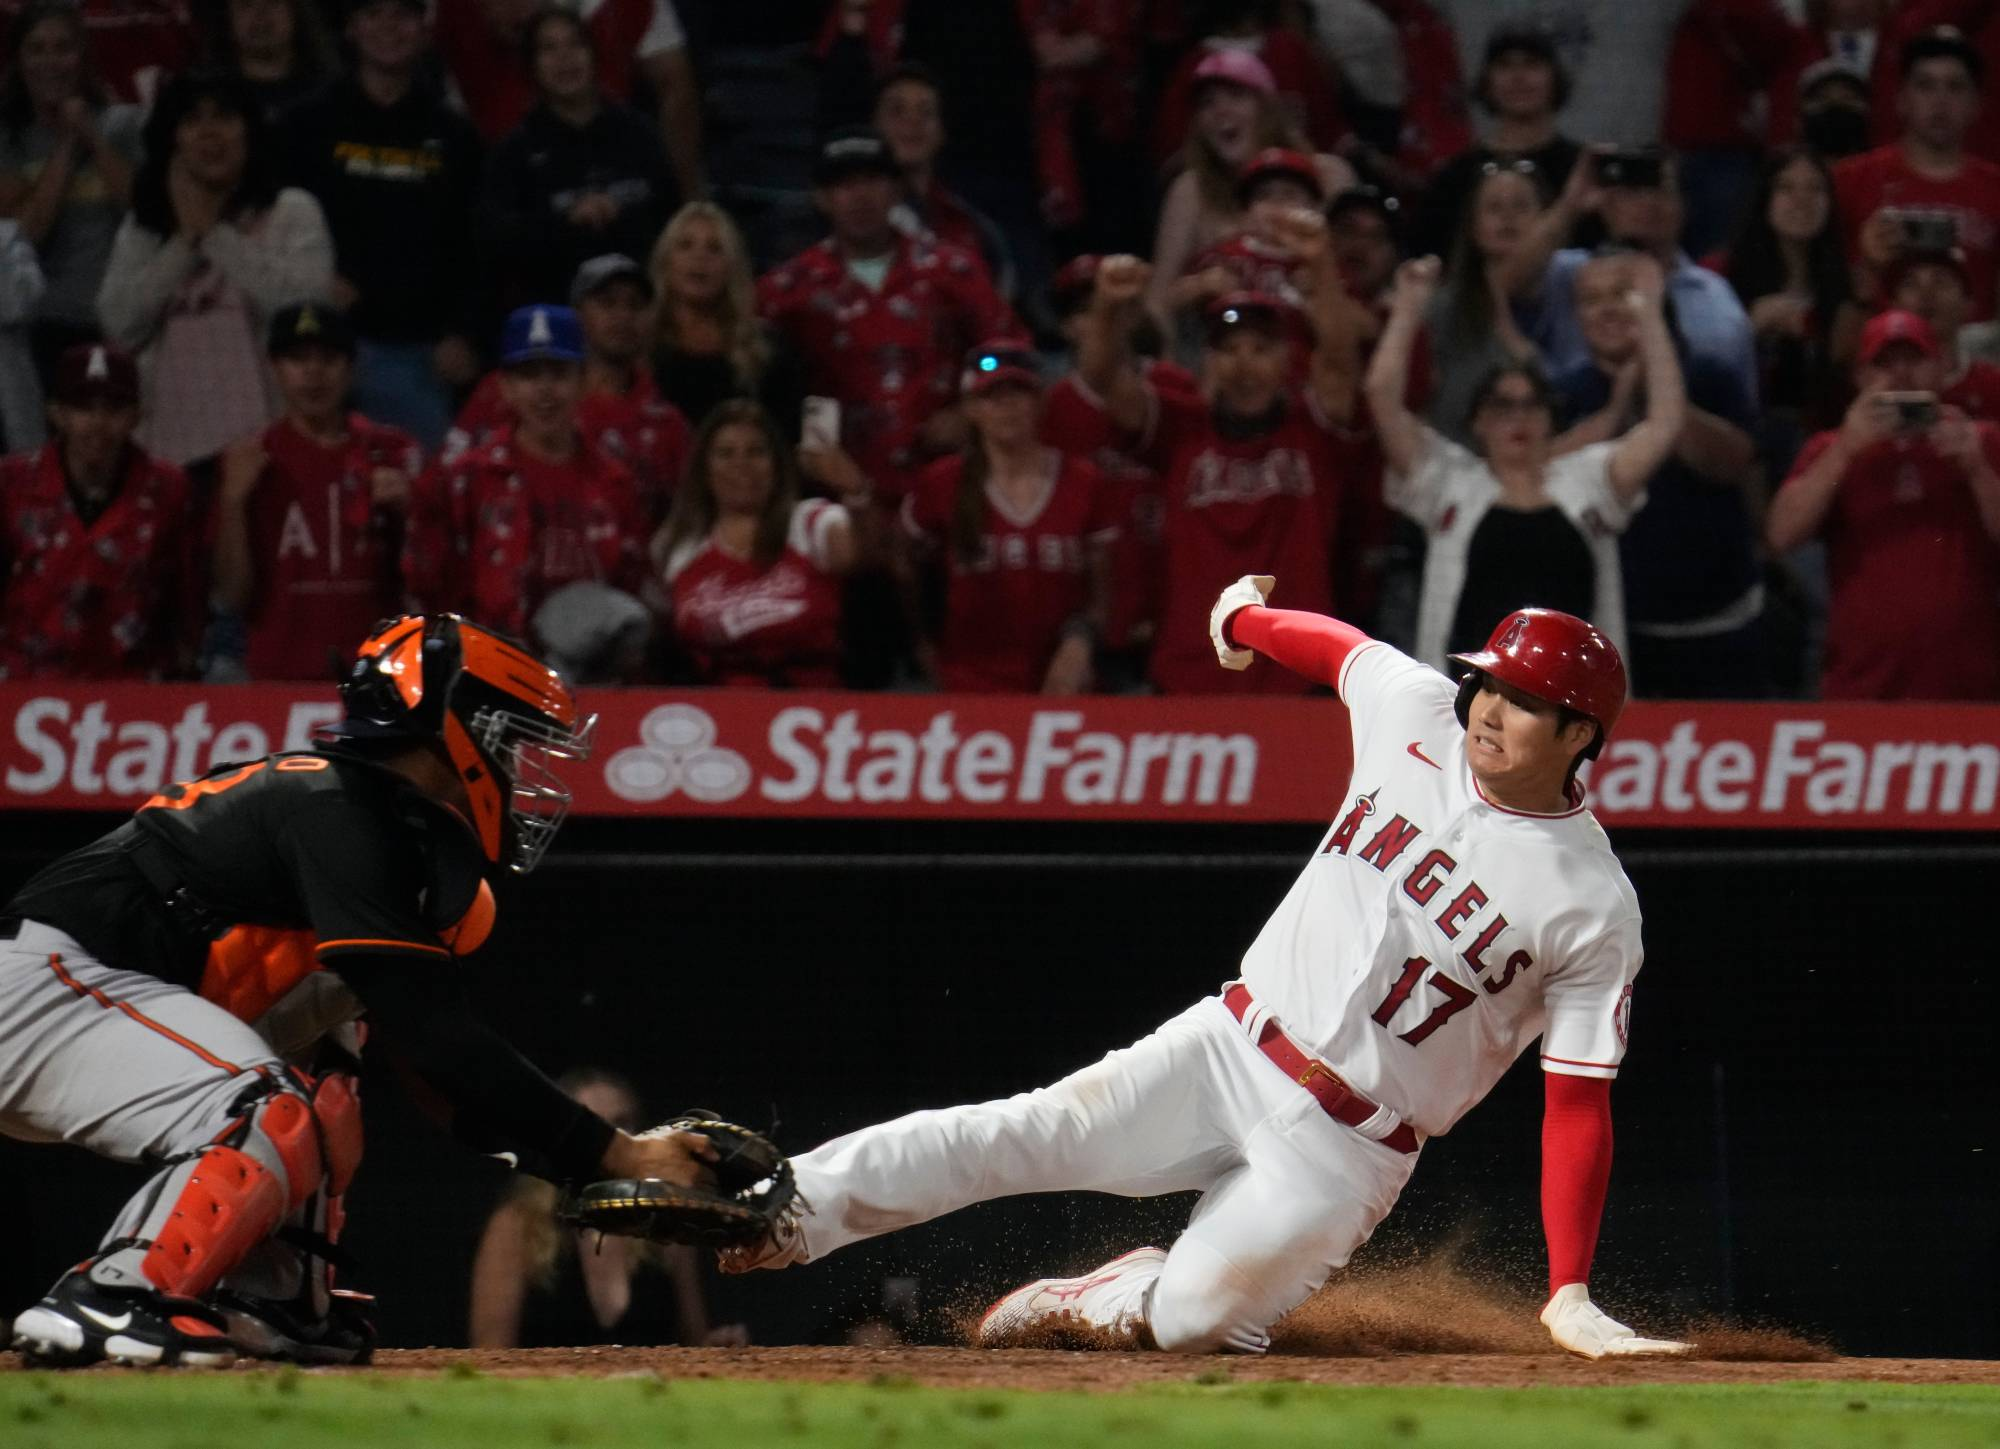 Los Angeles Angels designated hitter Shohei Ohtani slides into home to score the winning run in the bottom of the ninth inning against the Baltimore Orioles on Friday at Angel Stadium.    USA TODAY / VIA REUTERS